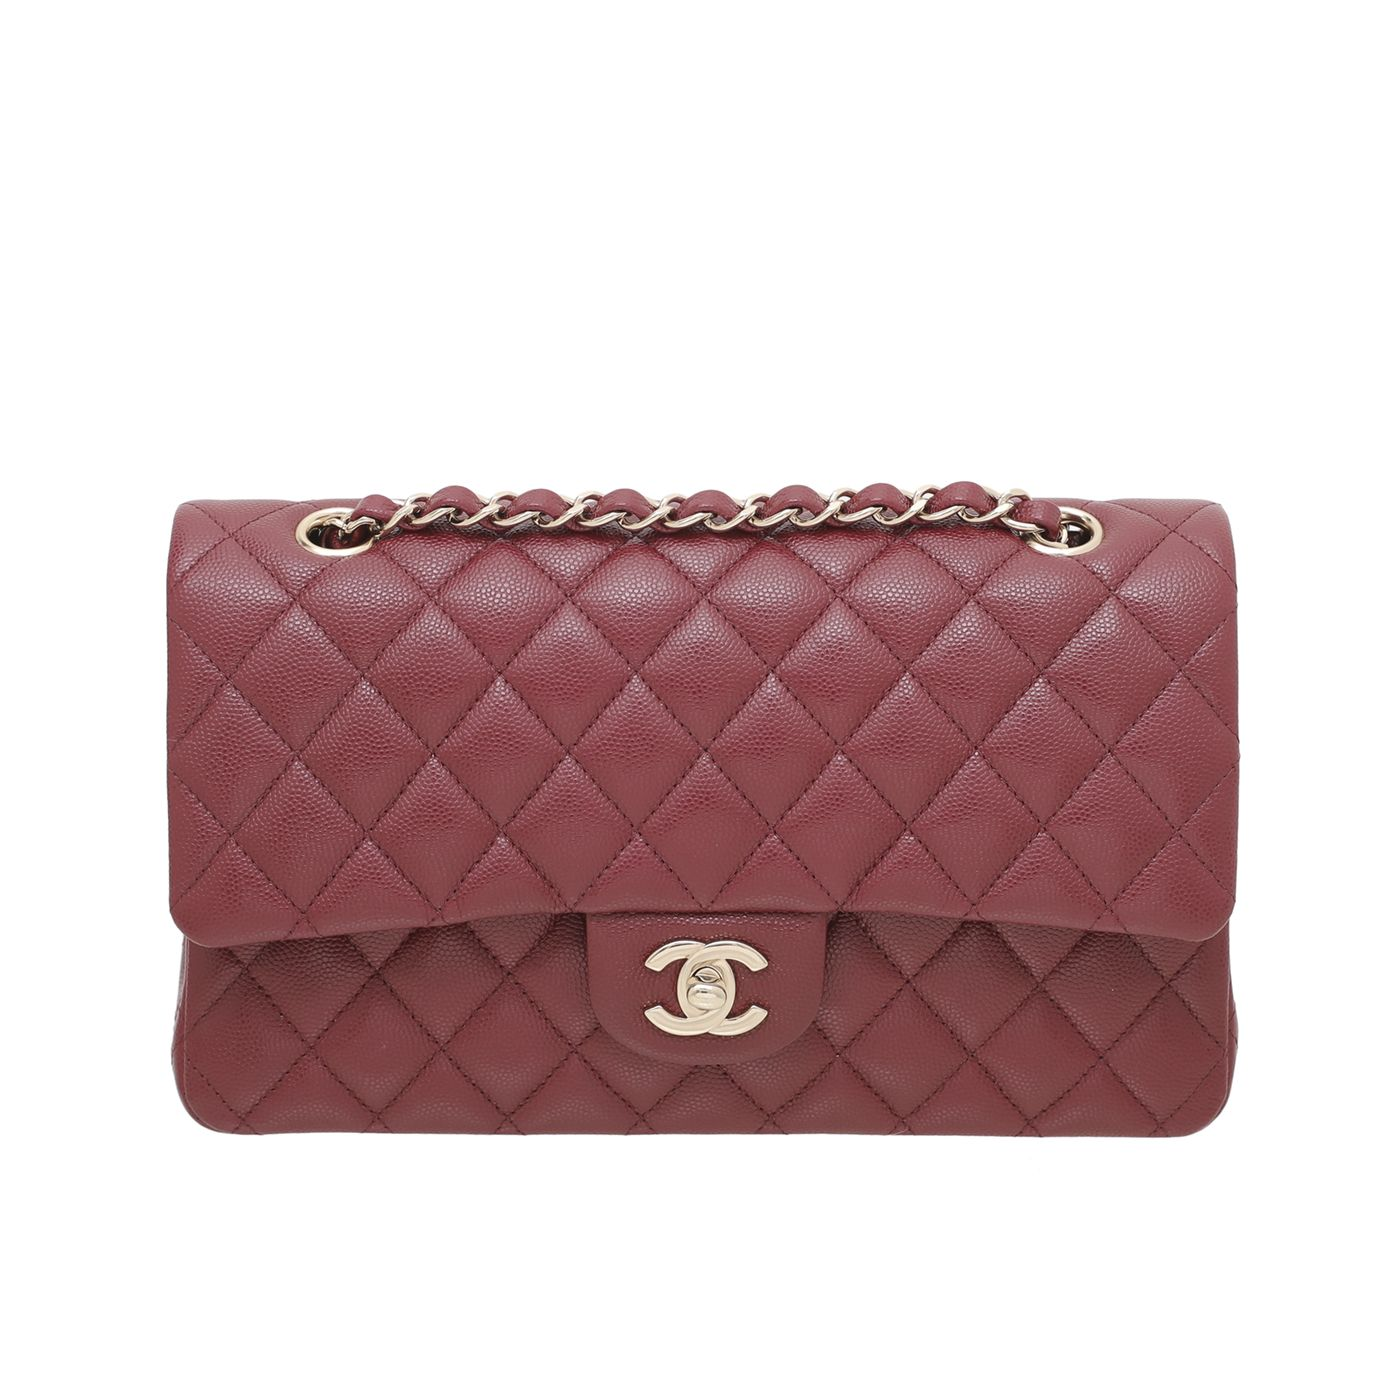 Chanel Red Classic Double Flap Medium Bag